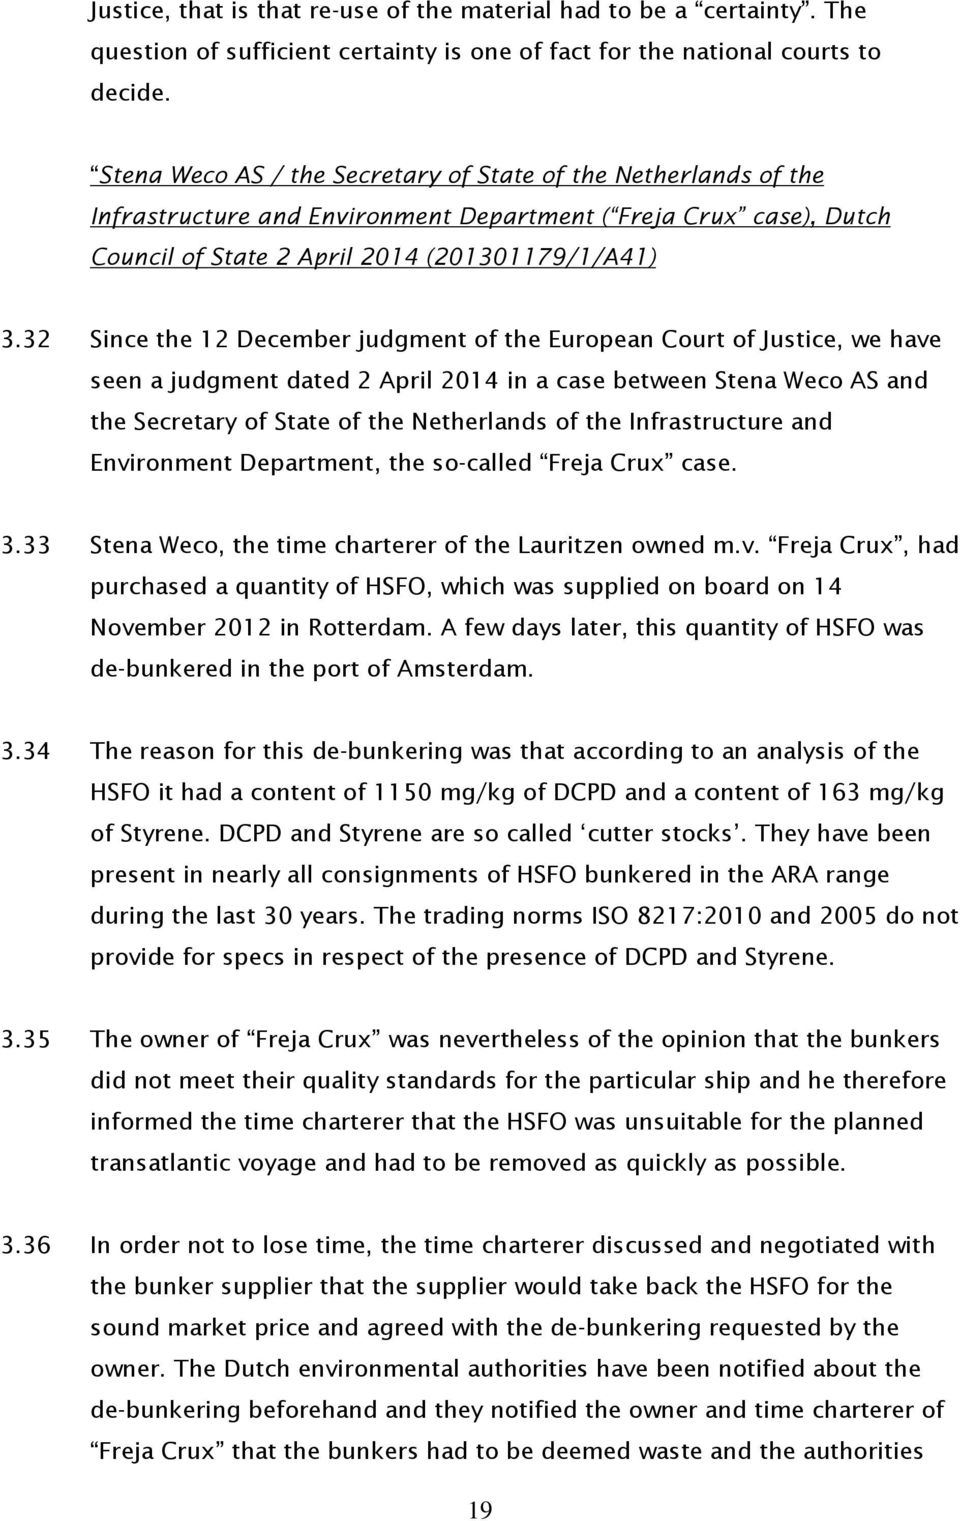 32 Since the 12 December judgment of the European Court of Justice, we have seen a judgment dated 2 April 2014 in a case between Stena Weco AS and the Secretary of State of the Netherlands of the